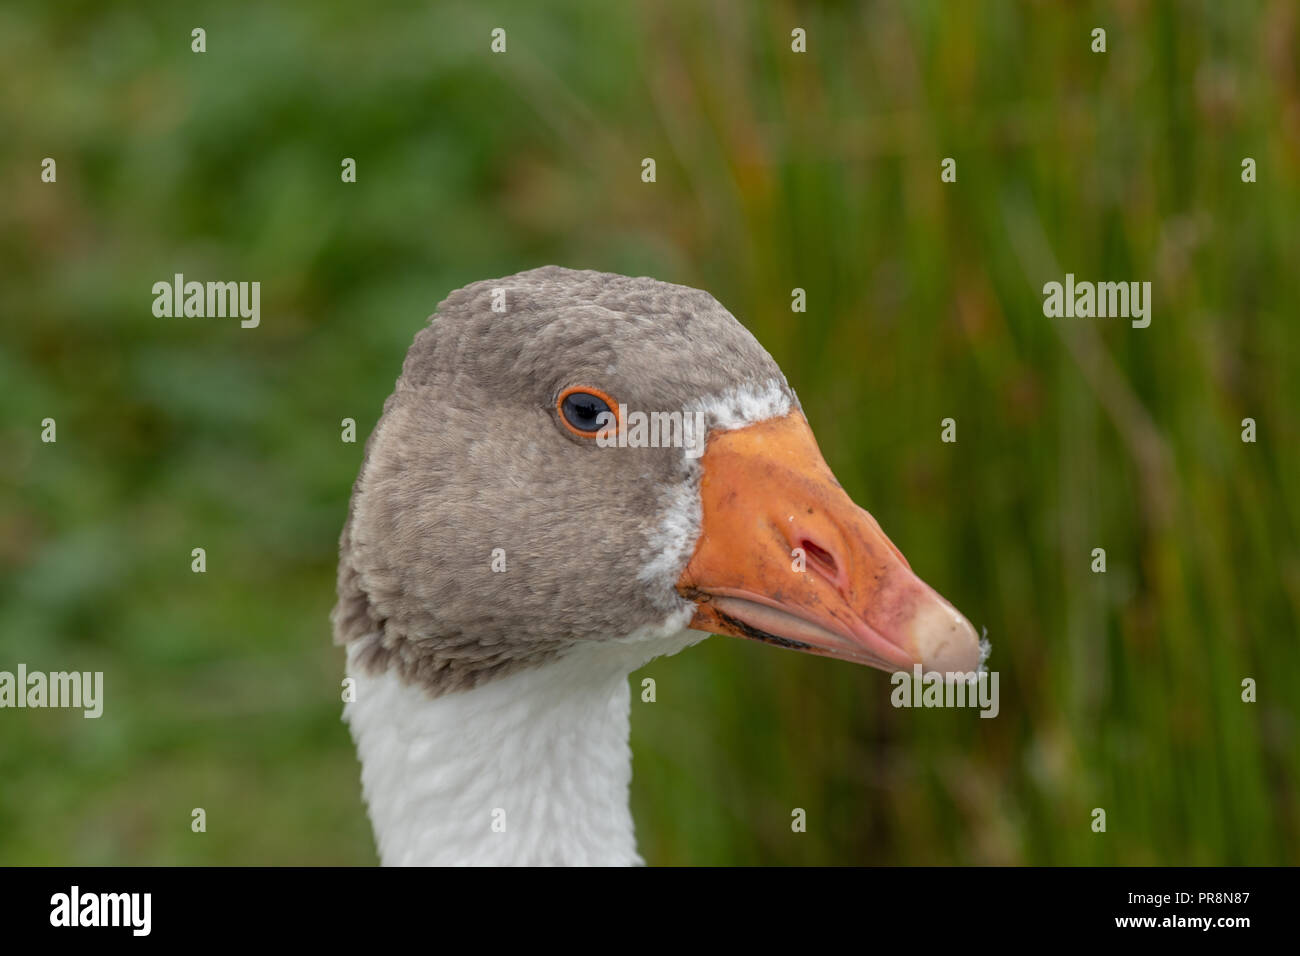 The Goose - Stock Image